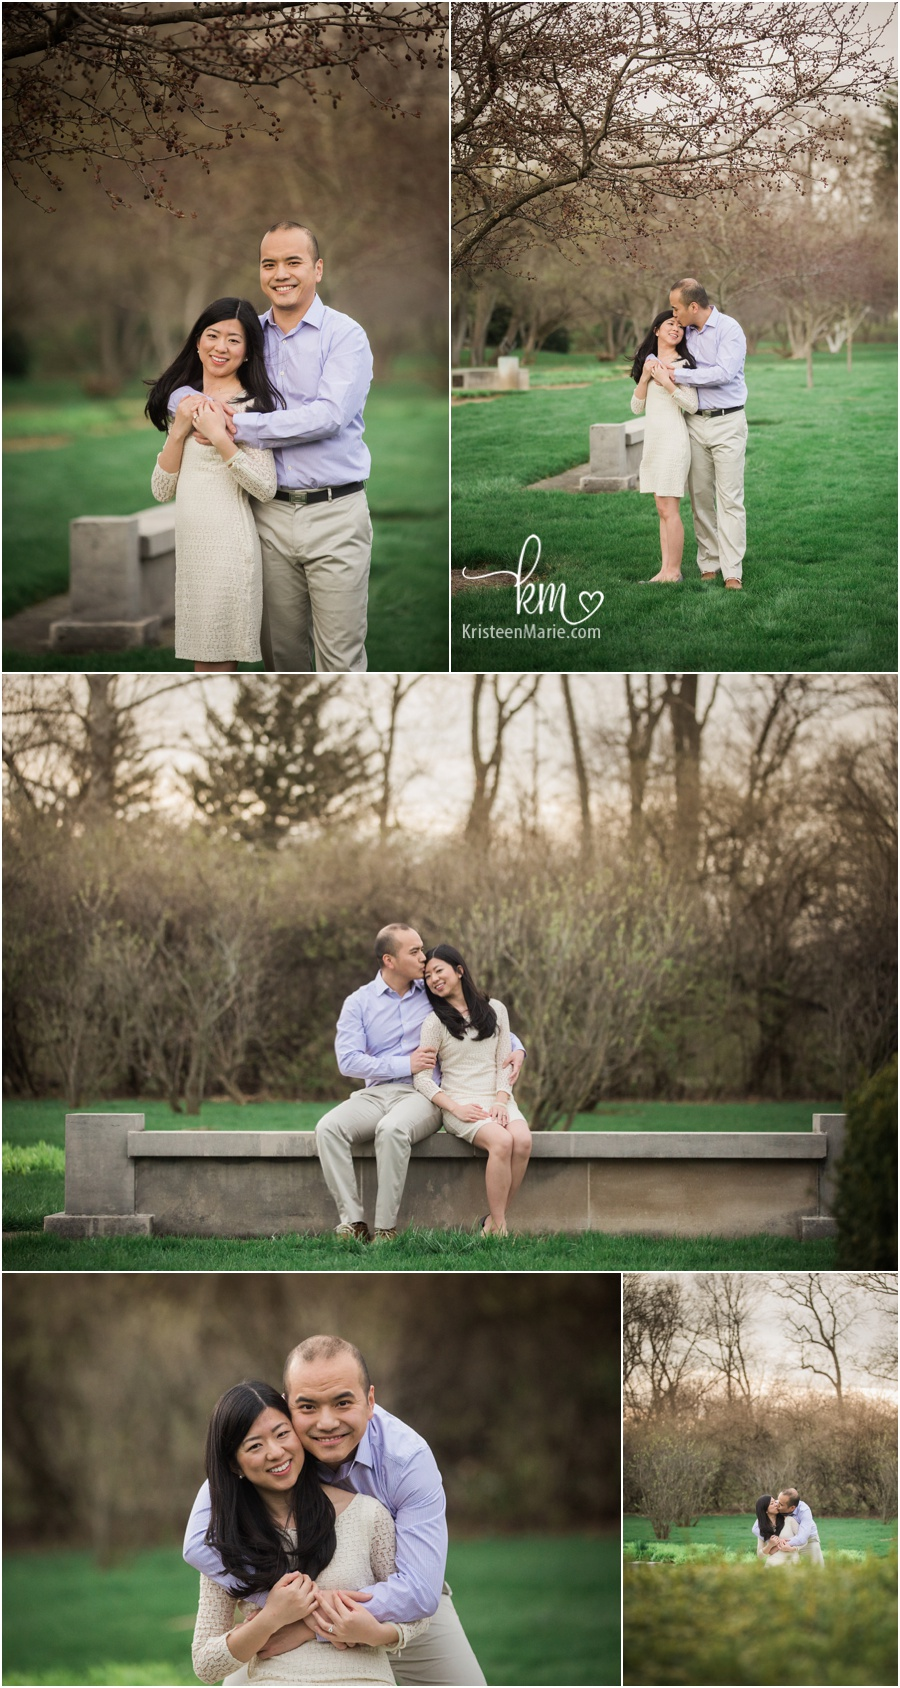 engaged to be married - copule photography in Indy